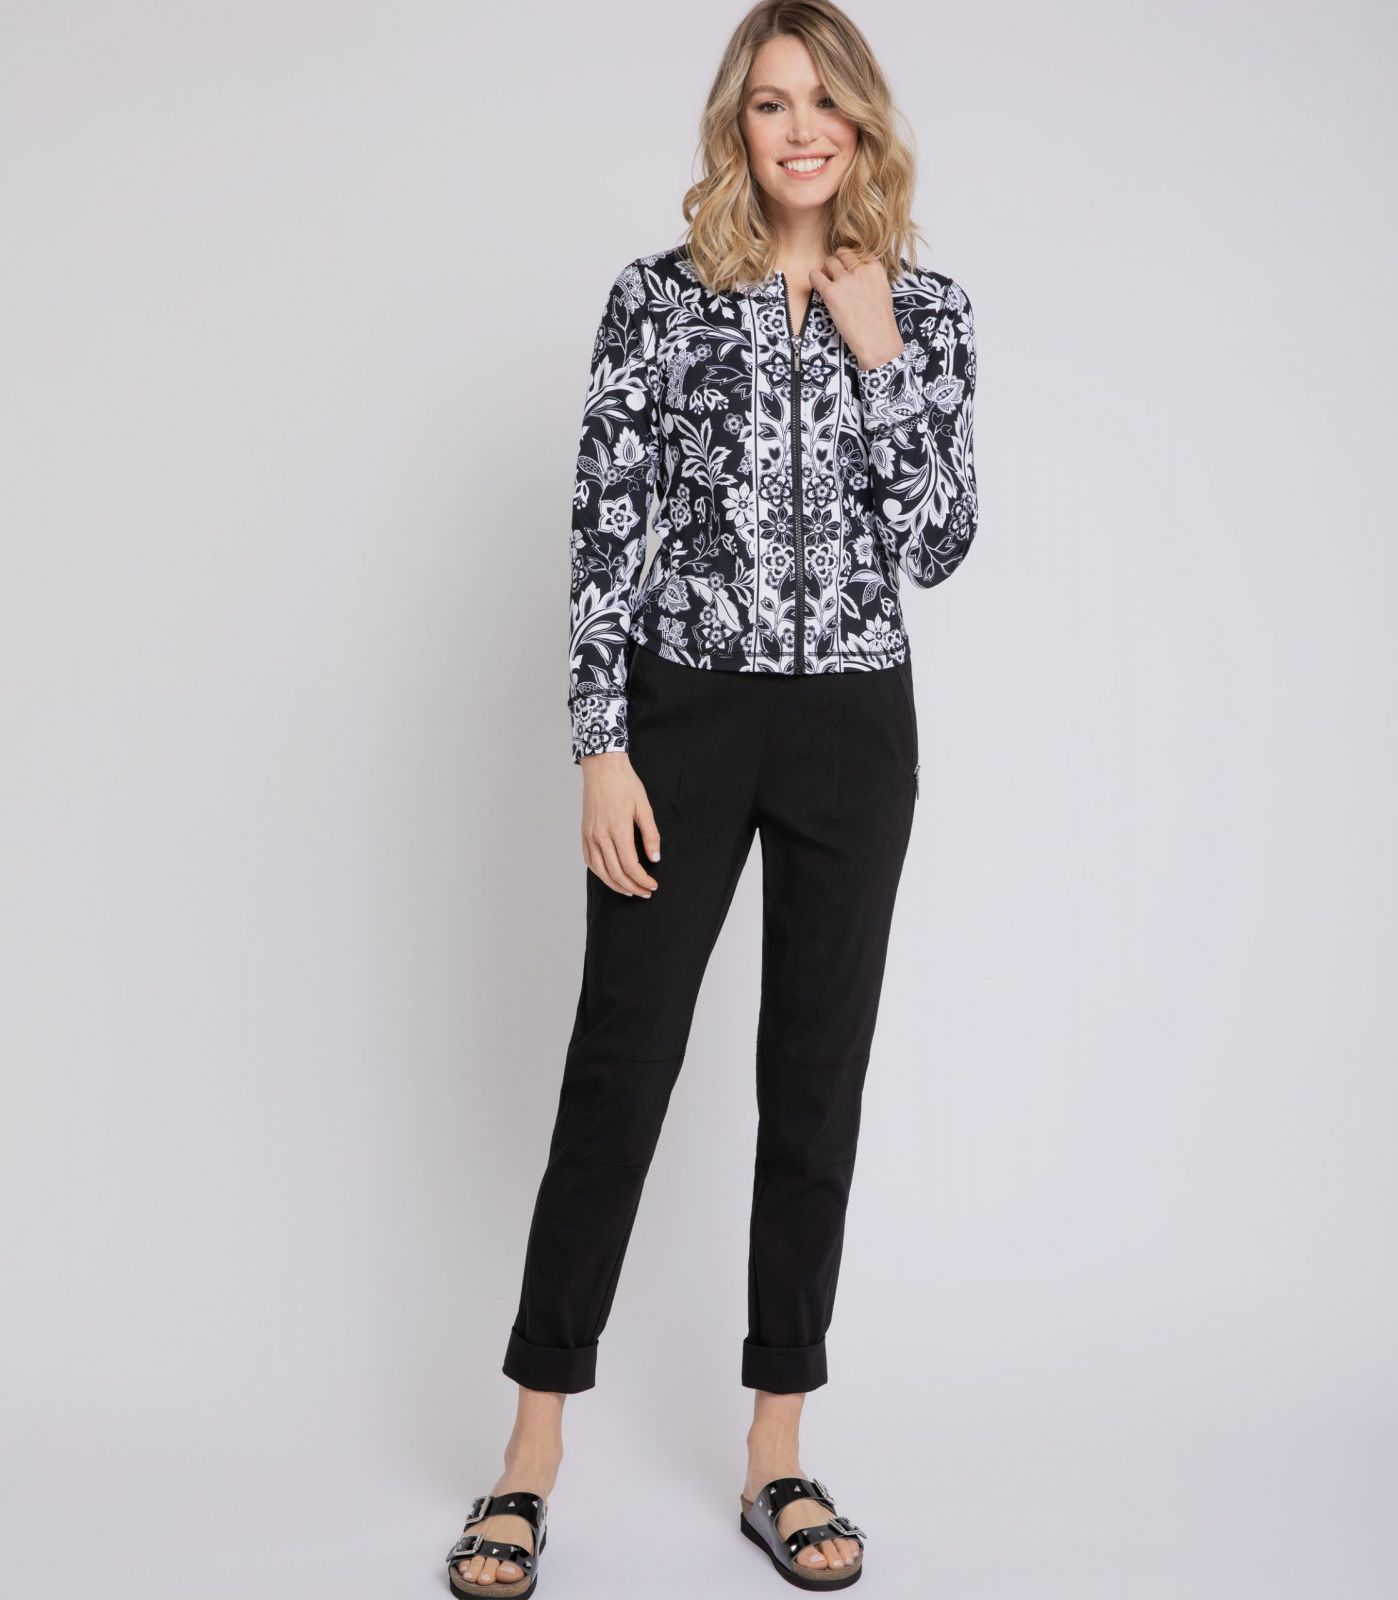 12-look-15-bylyse-0901-scaled